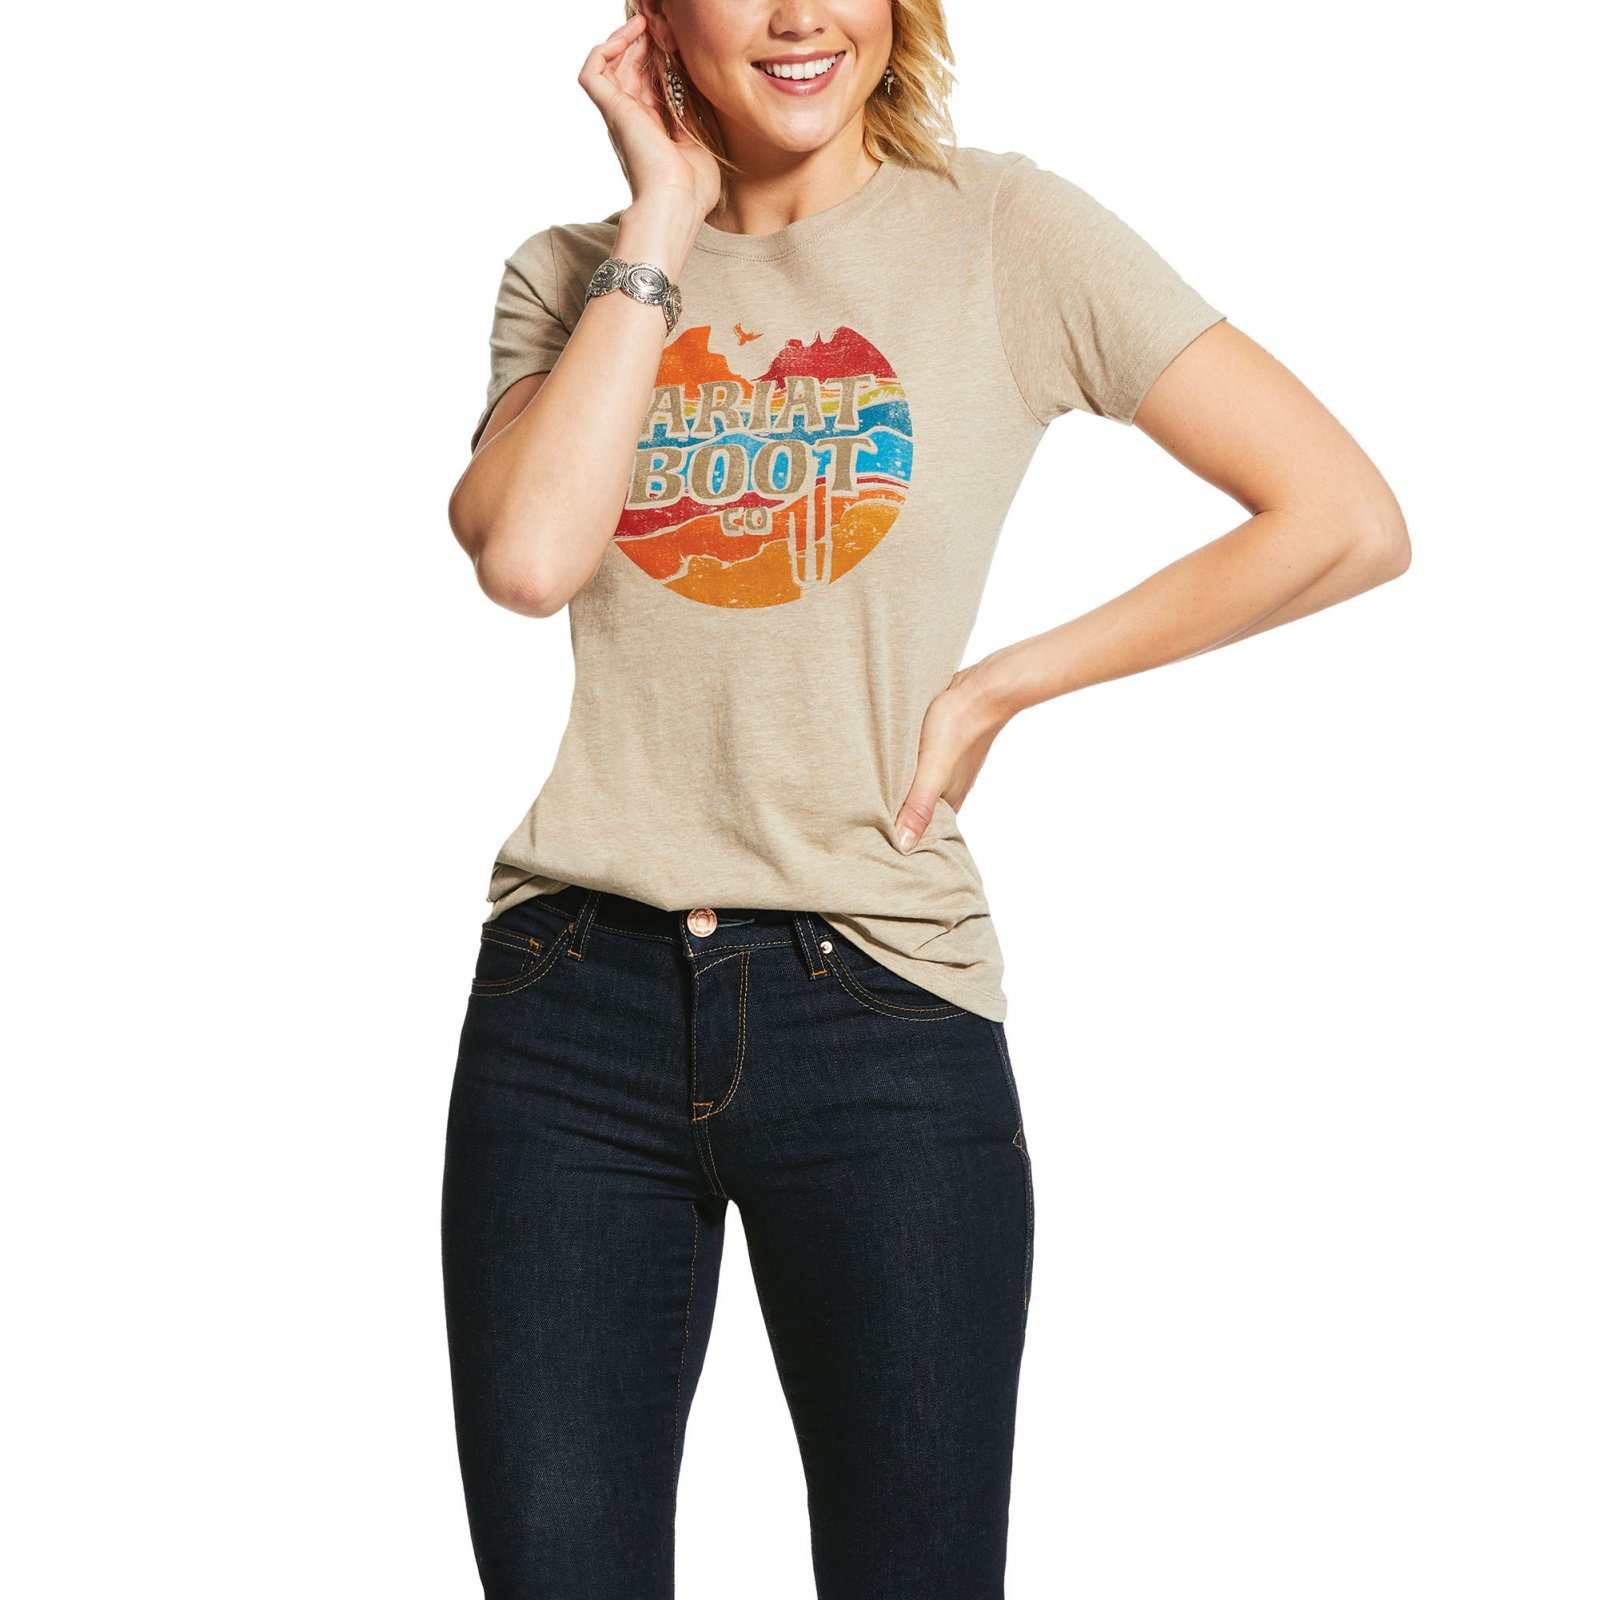 Longhorn Boot Co Tee from Ariat